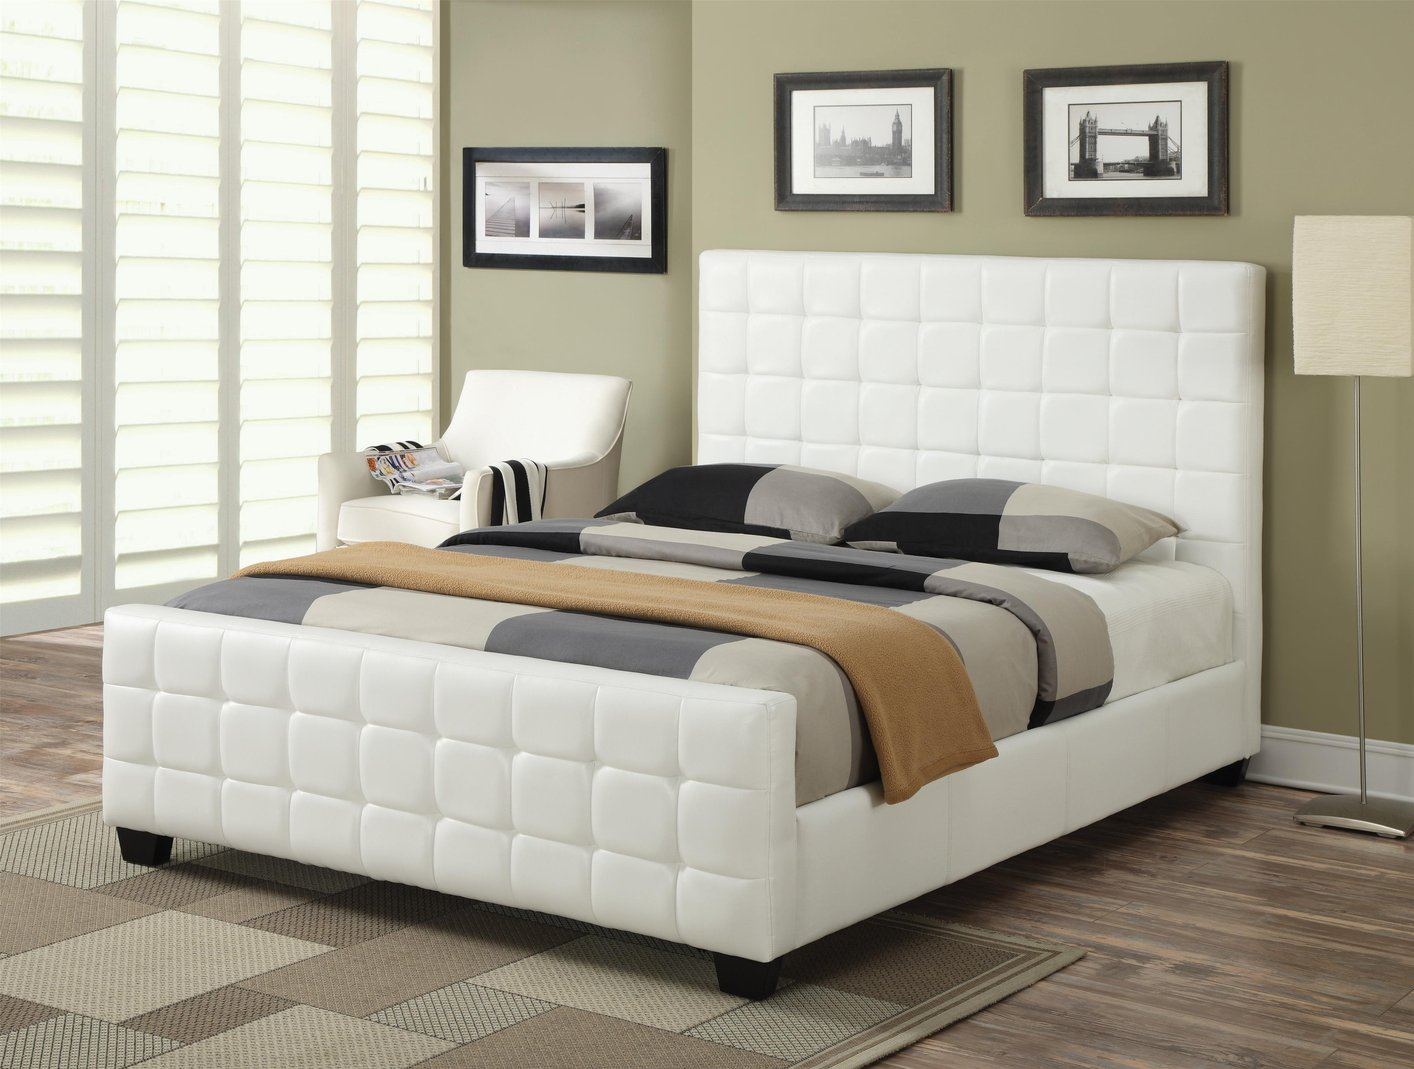 King Size Bed Size White Wood California King Size Bed Steal A Sofa